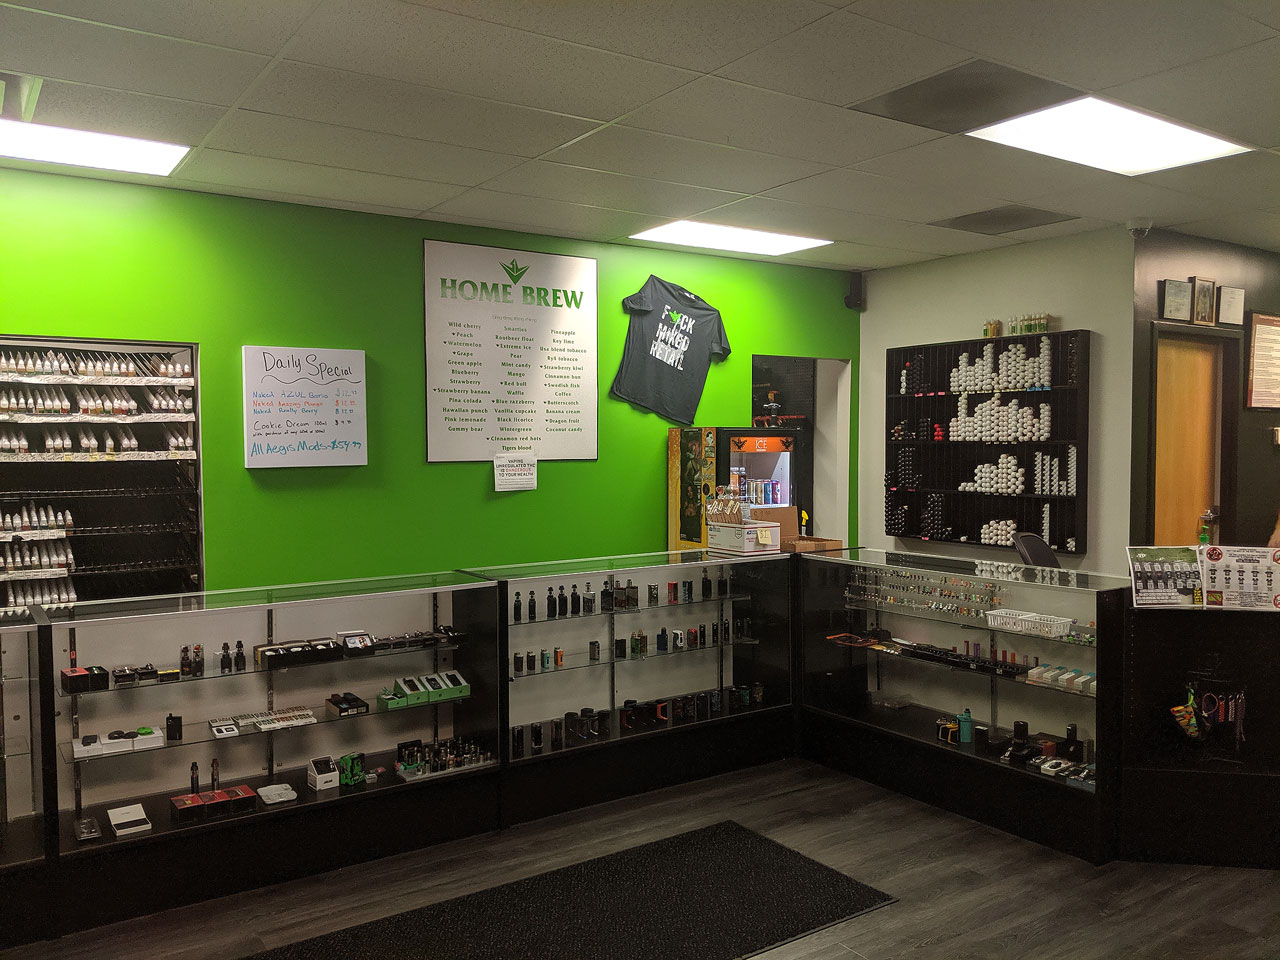 Salt Lake Vapors West Valley location